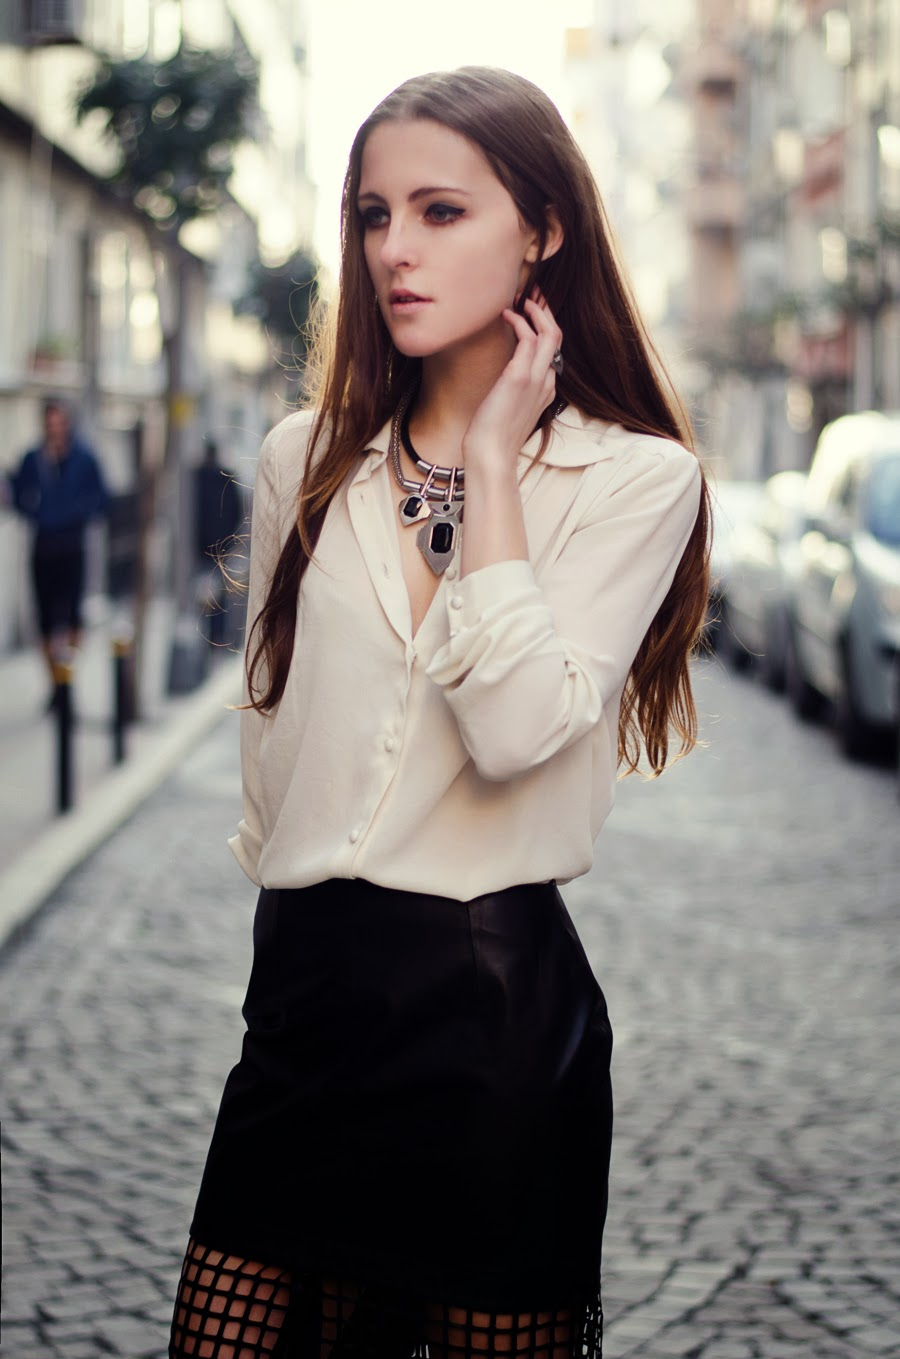 details, long hair look, street style istanbul russian fashionblogger, leather skirt outfit, mesh skirt outfit, white blouse outfit, spring 2014 street style, massive necklace outfit, persunmall bloggers